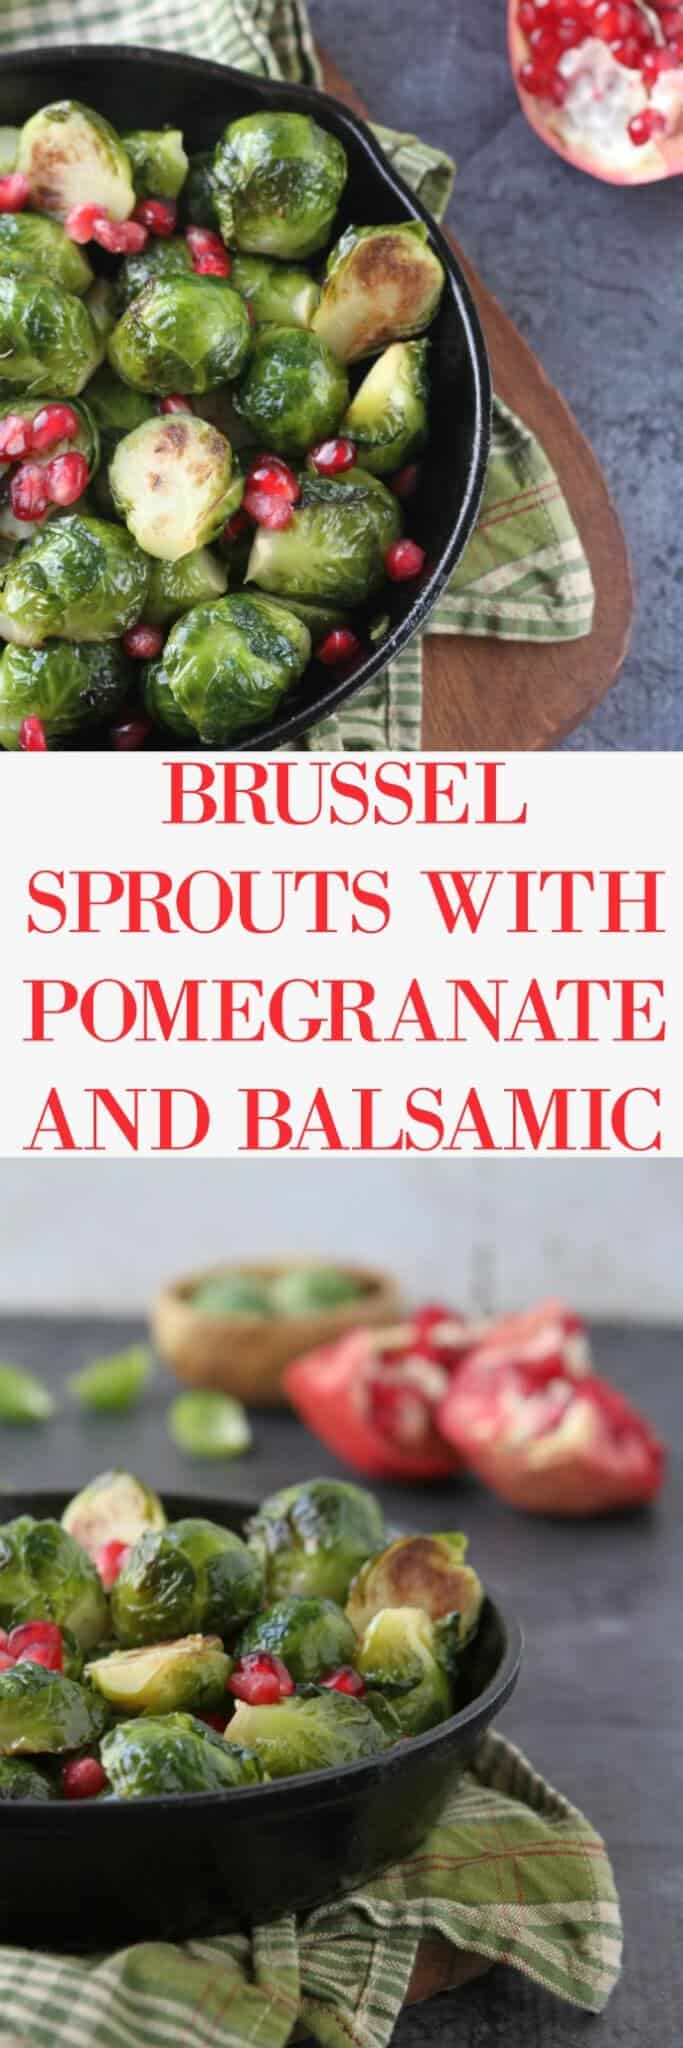 Sauteed Brussels Sprouts With Pomegranate And Balsamic